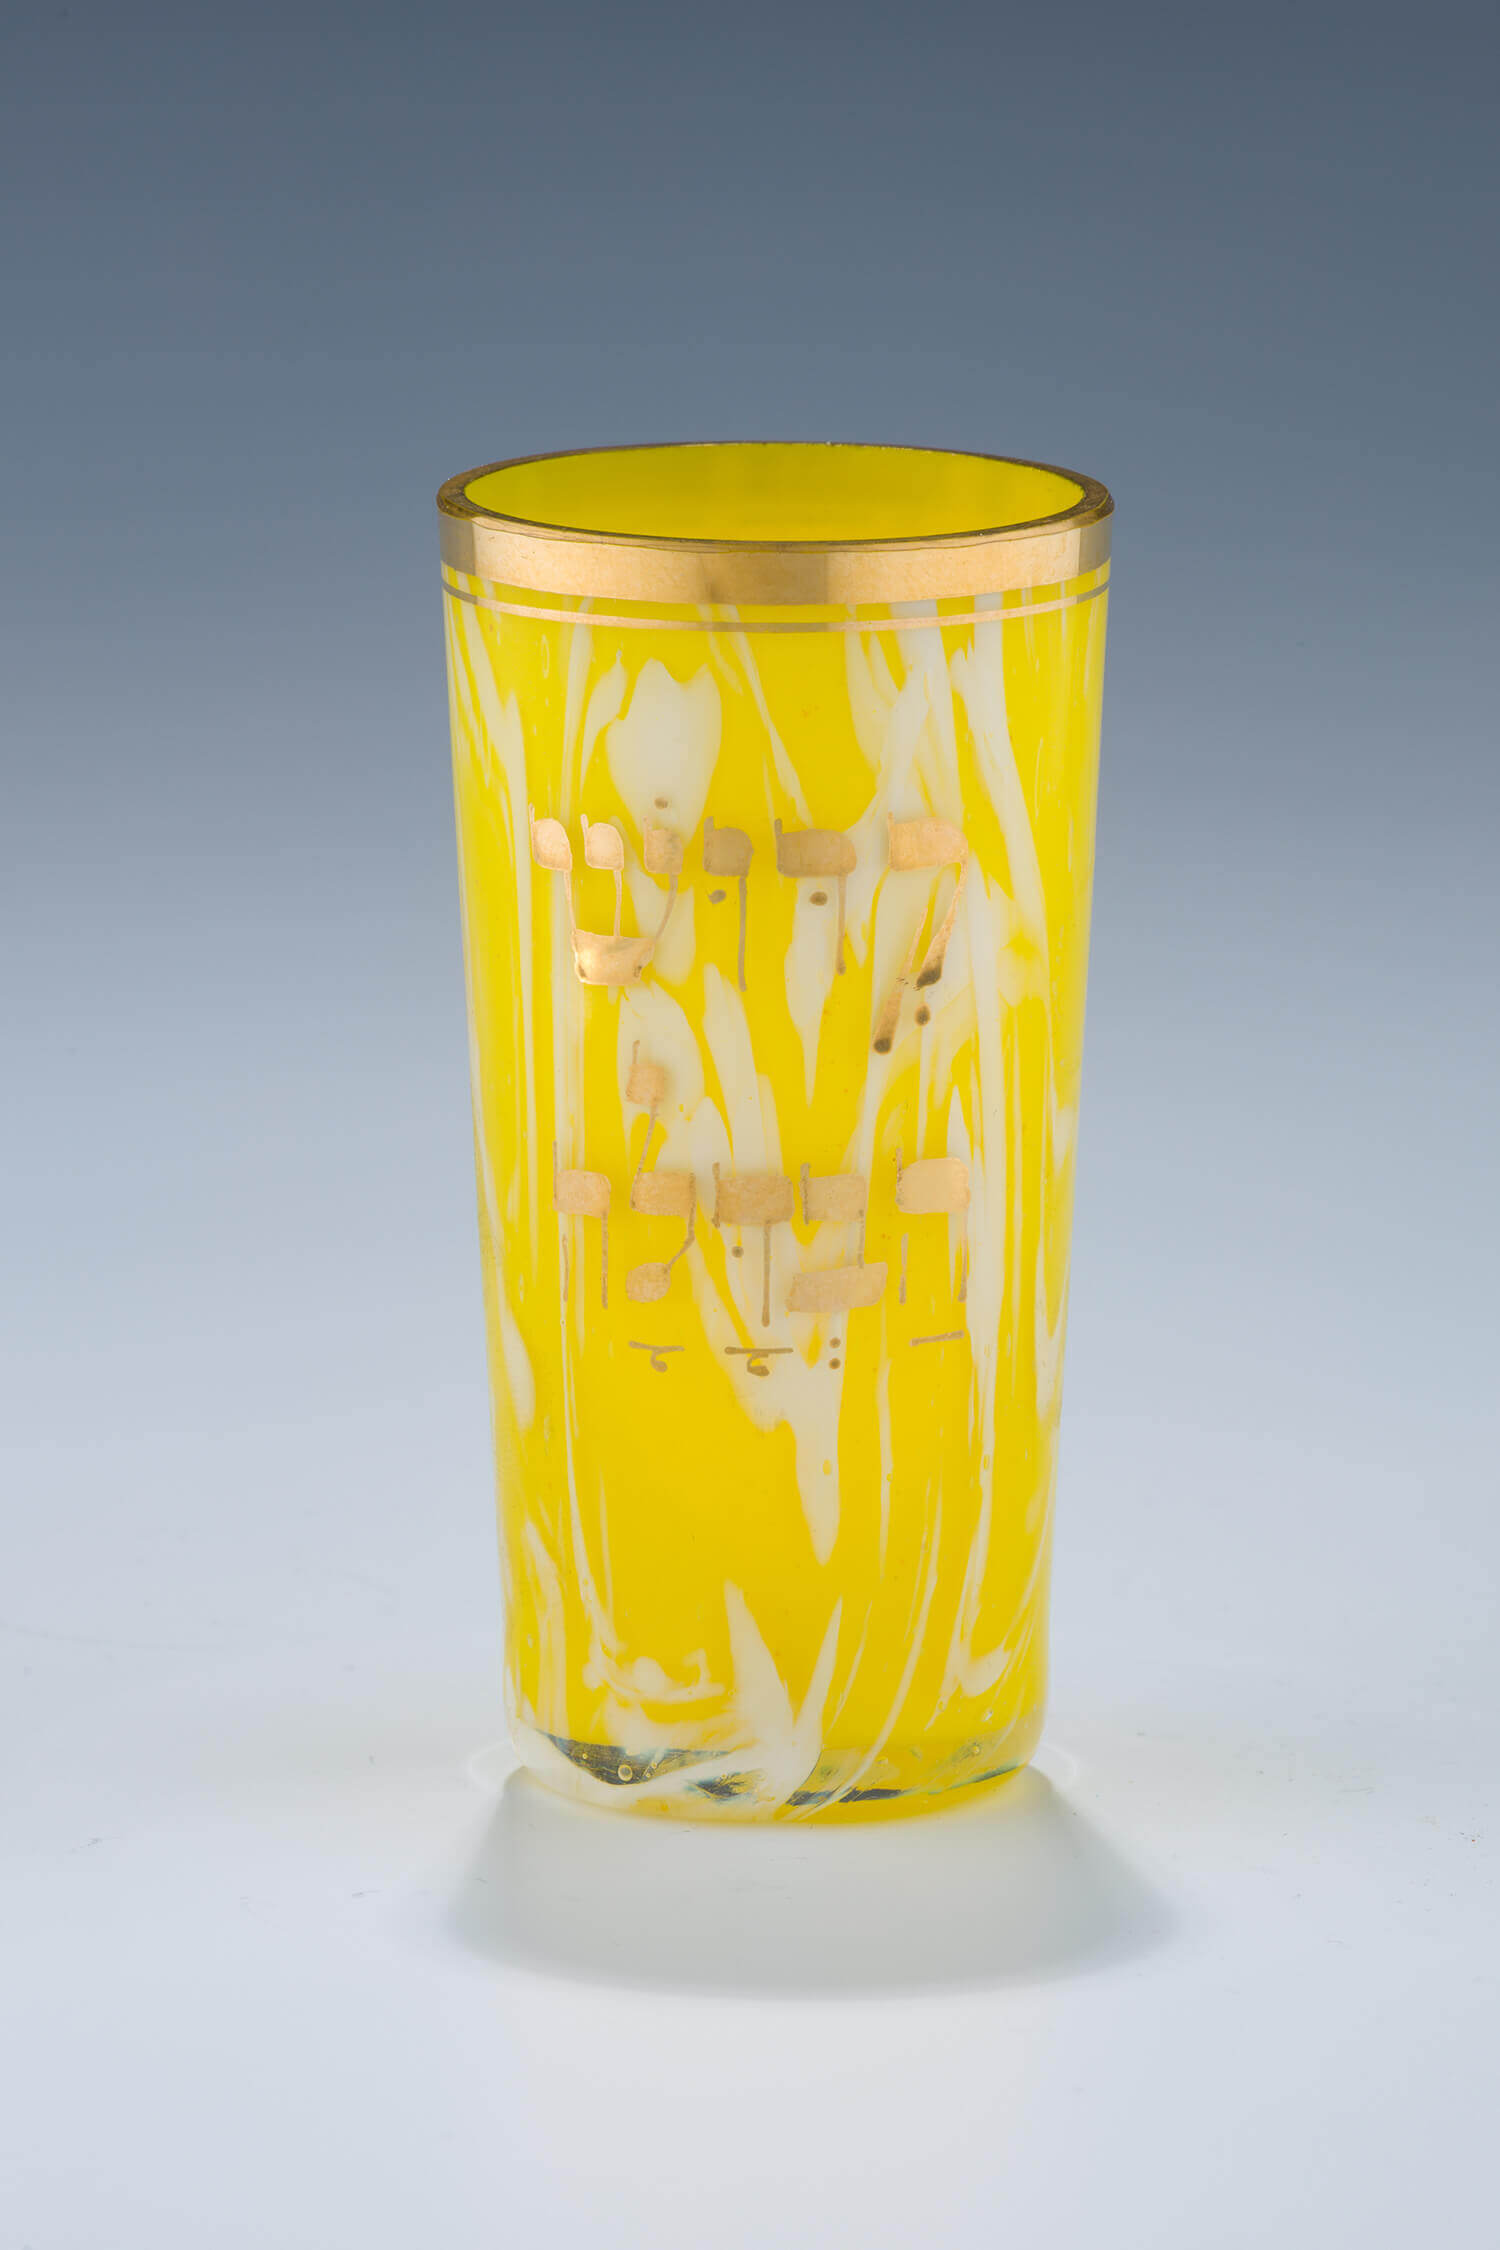 013. A GLASS KIDDUSH BEAKER